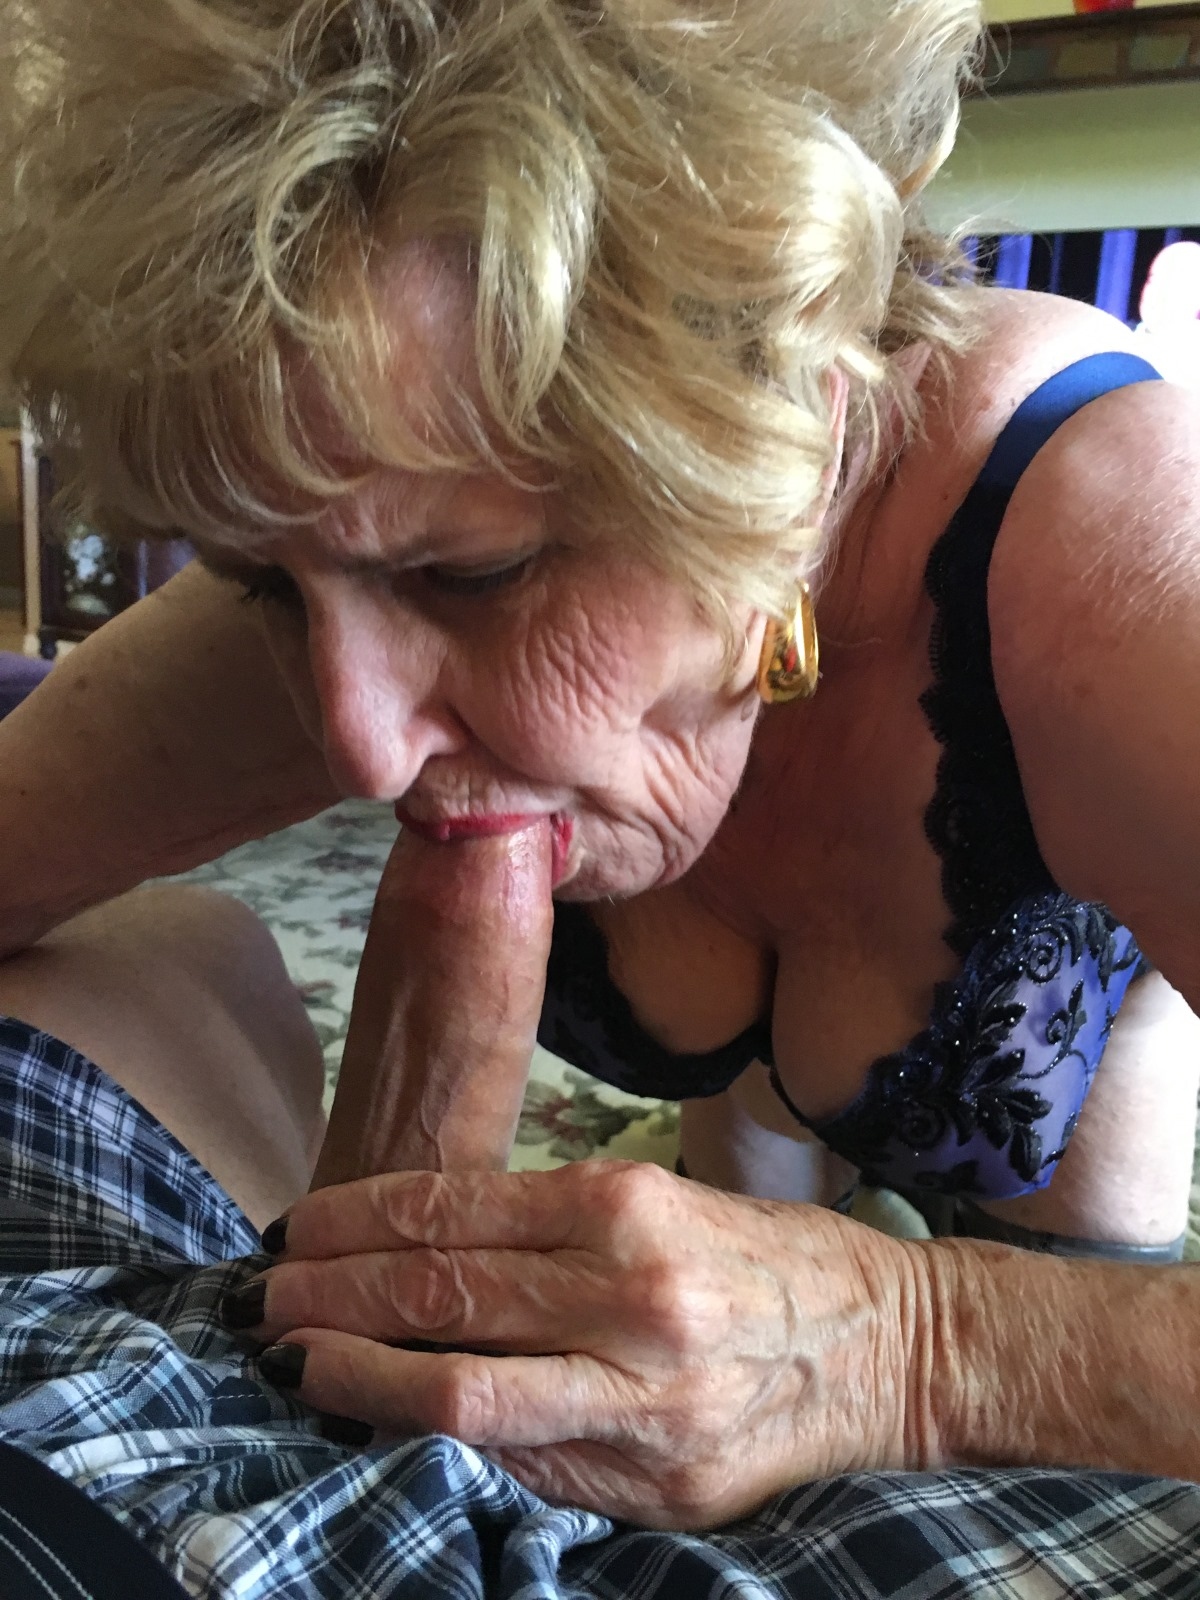 Milf fucks younger guy part 2 - 2 part 10